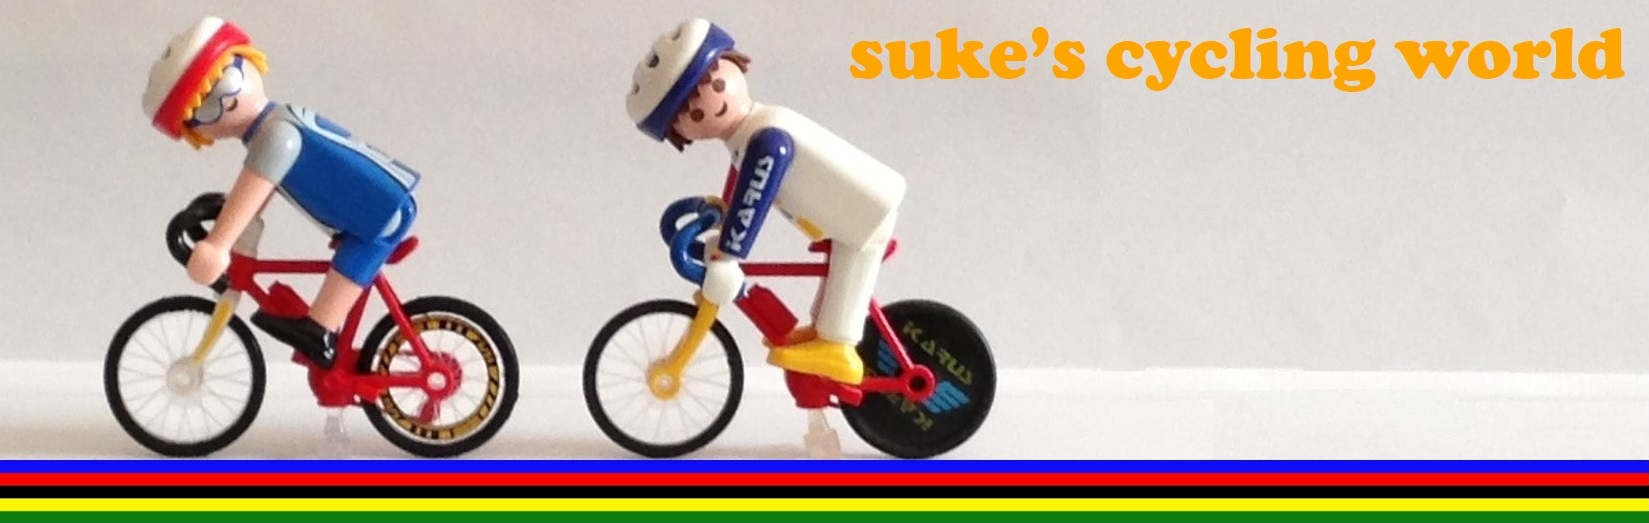 sukecycle_banner_